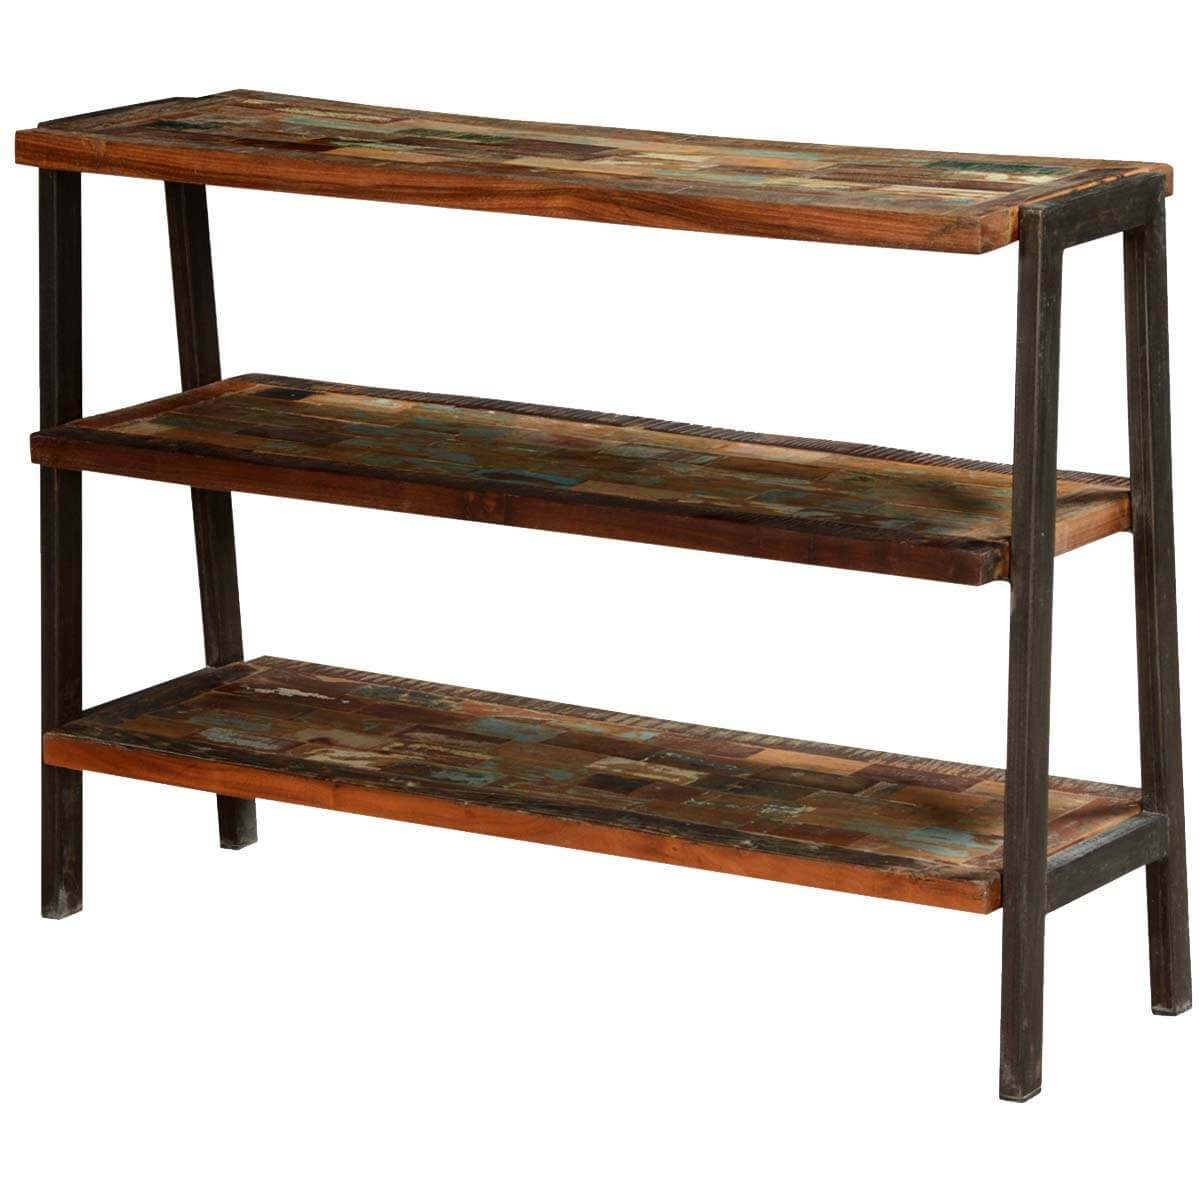 Amazing photo of Painted Bricks Reclaimed Wood & Iron 3 Open Shelf Console Table with #B27F19 color and 1200x1200 pixels